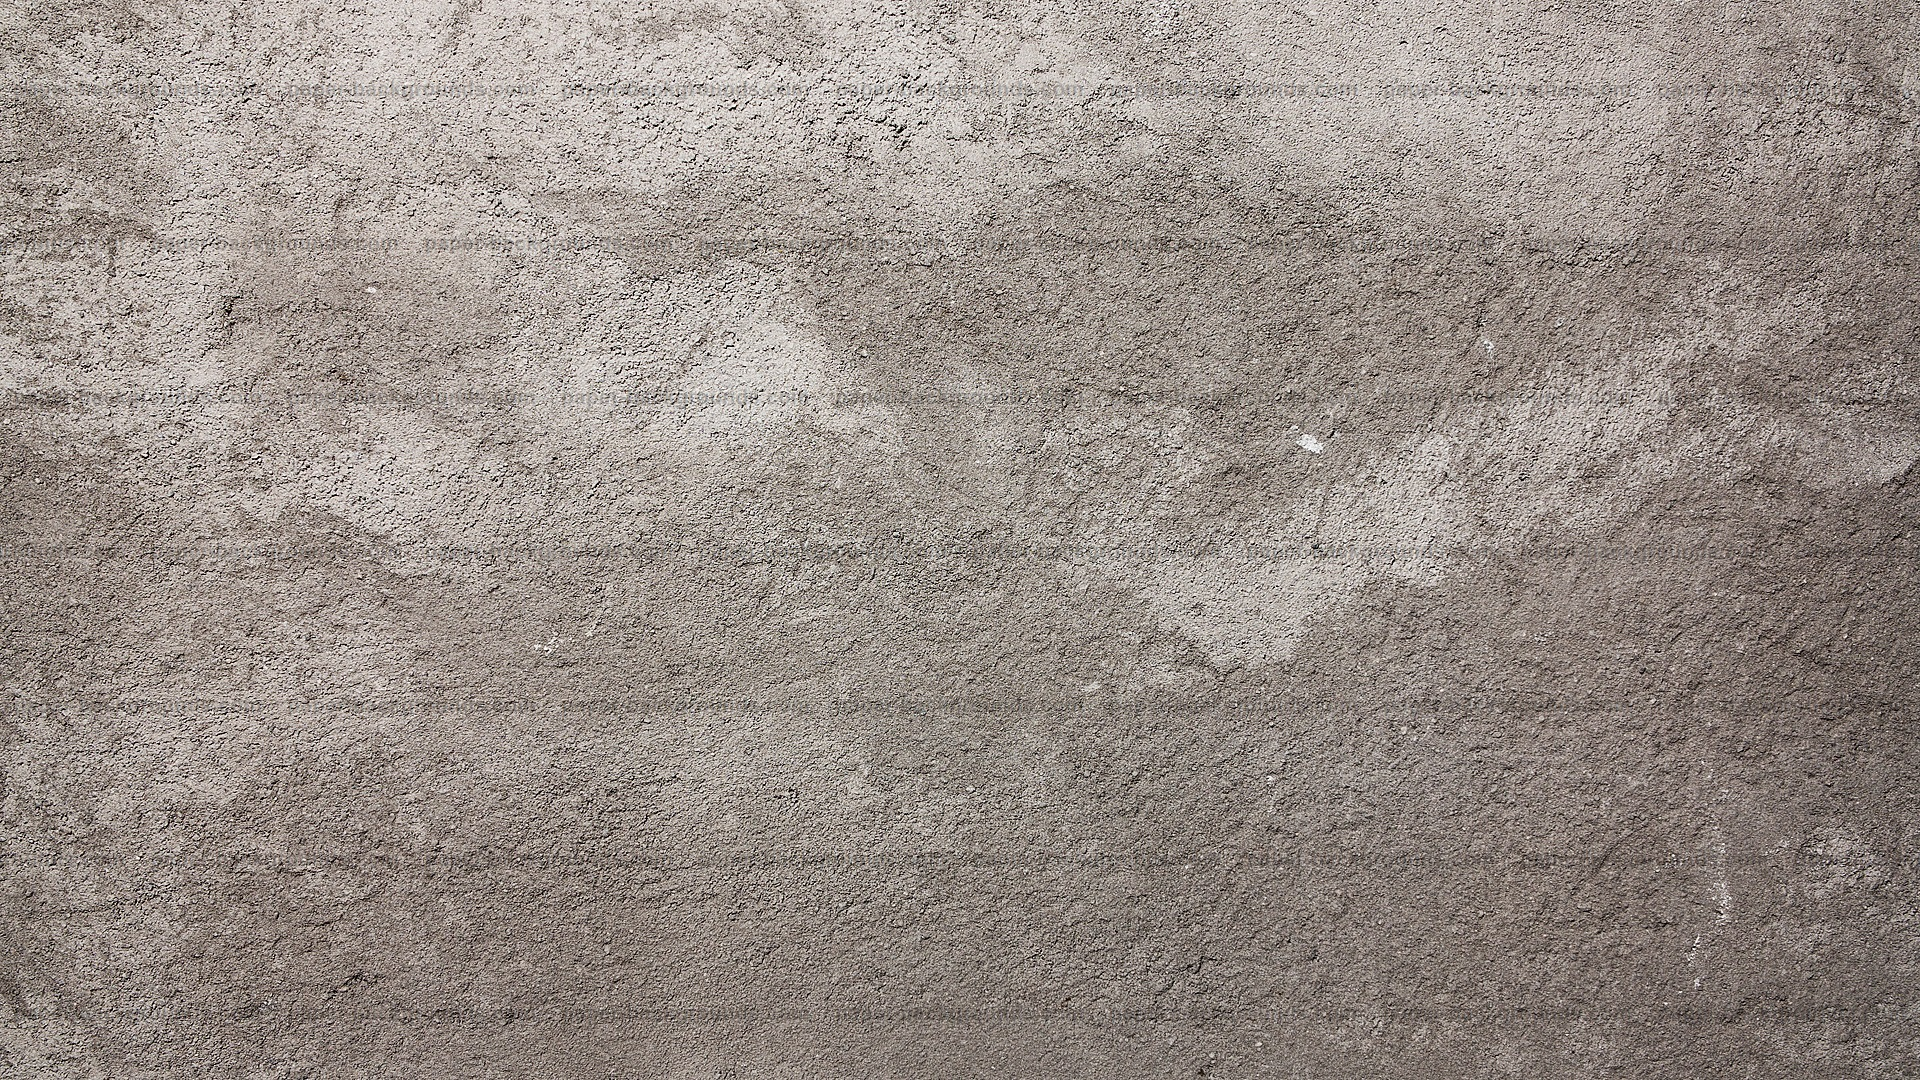 Vintage Concrete Wall Background Texture HD Paper Backgrounds 1920x1080